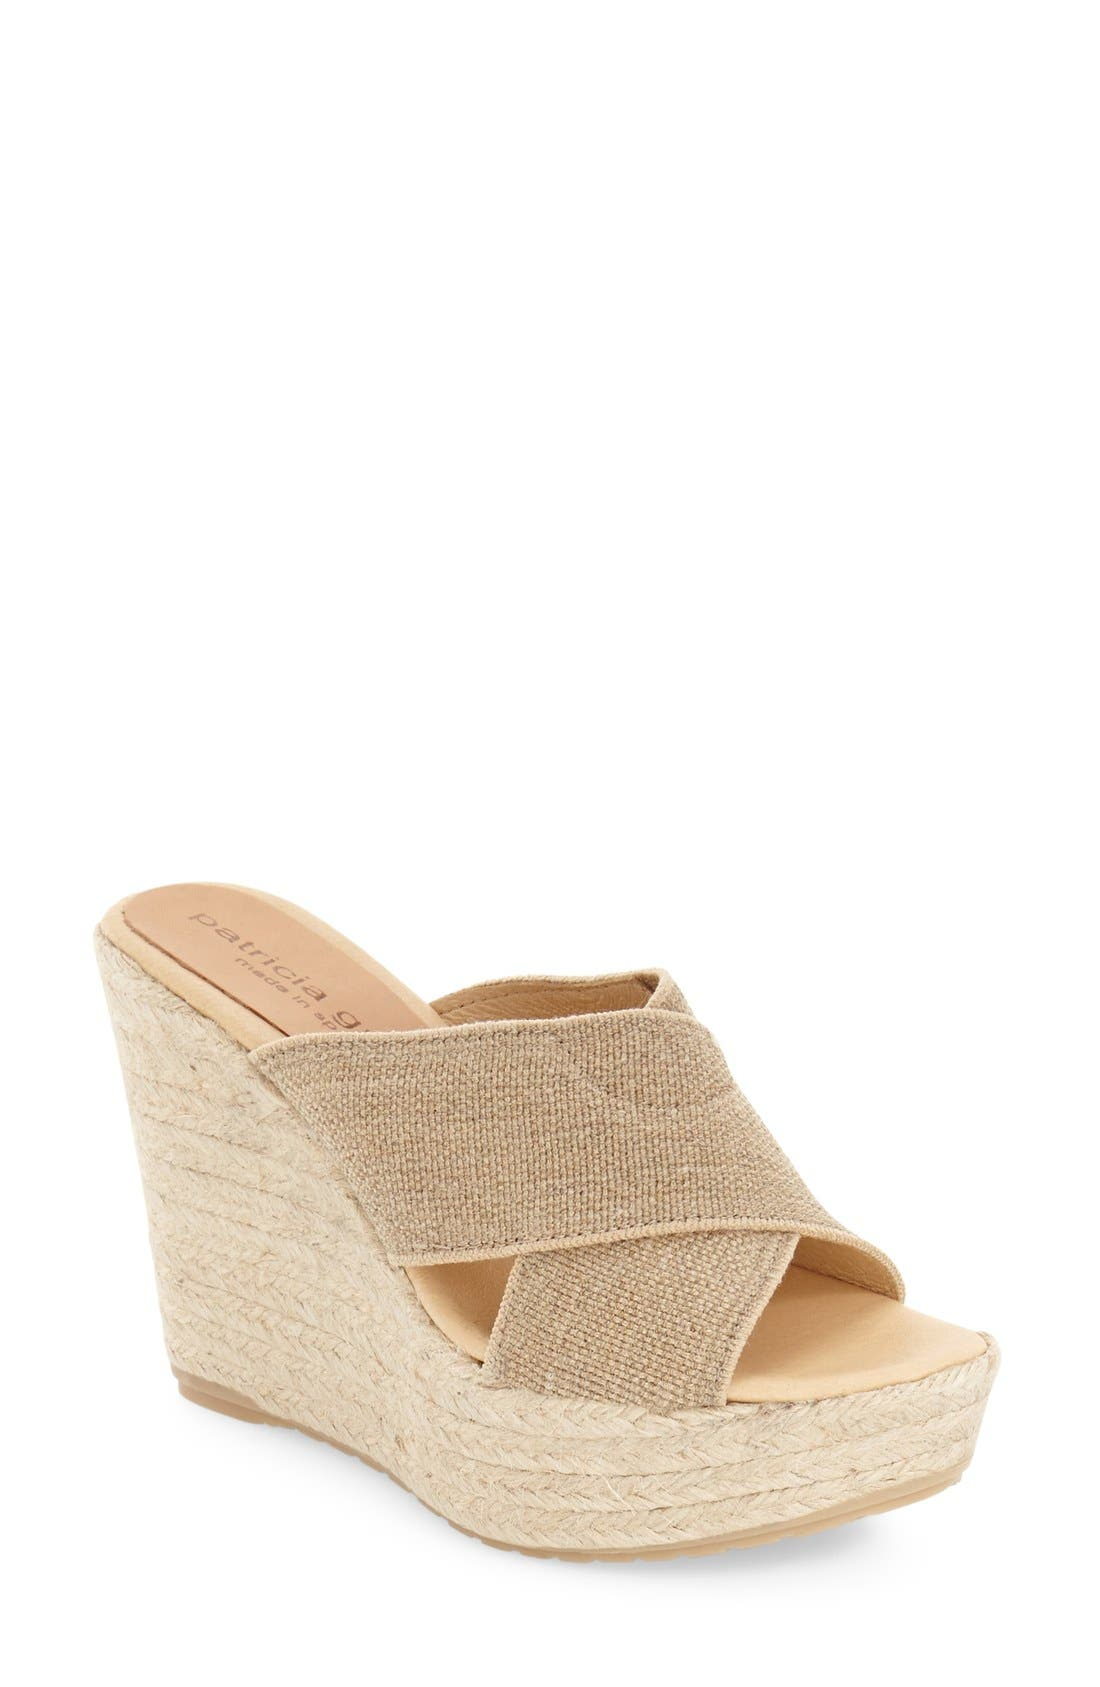 Alternate Image 1 Selected - patricia green 'Nora' Espadrille Wedge (Women)